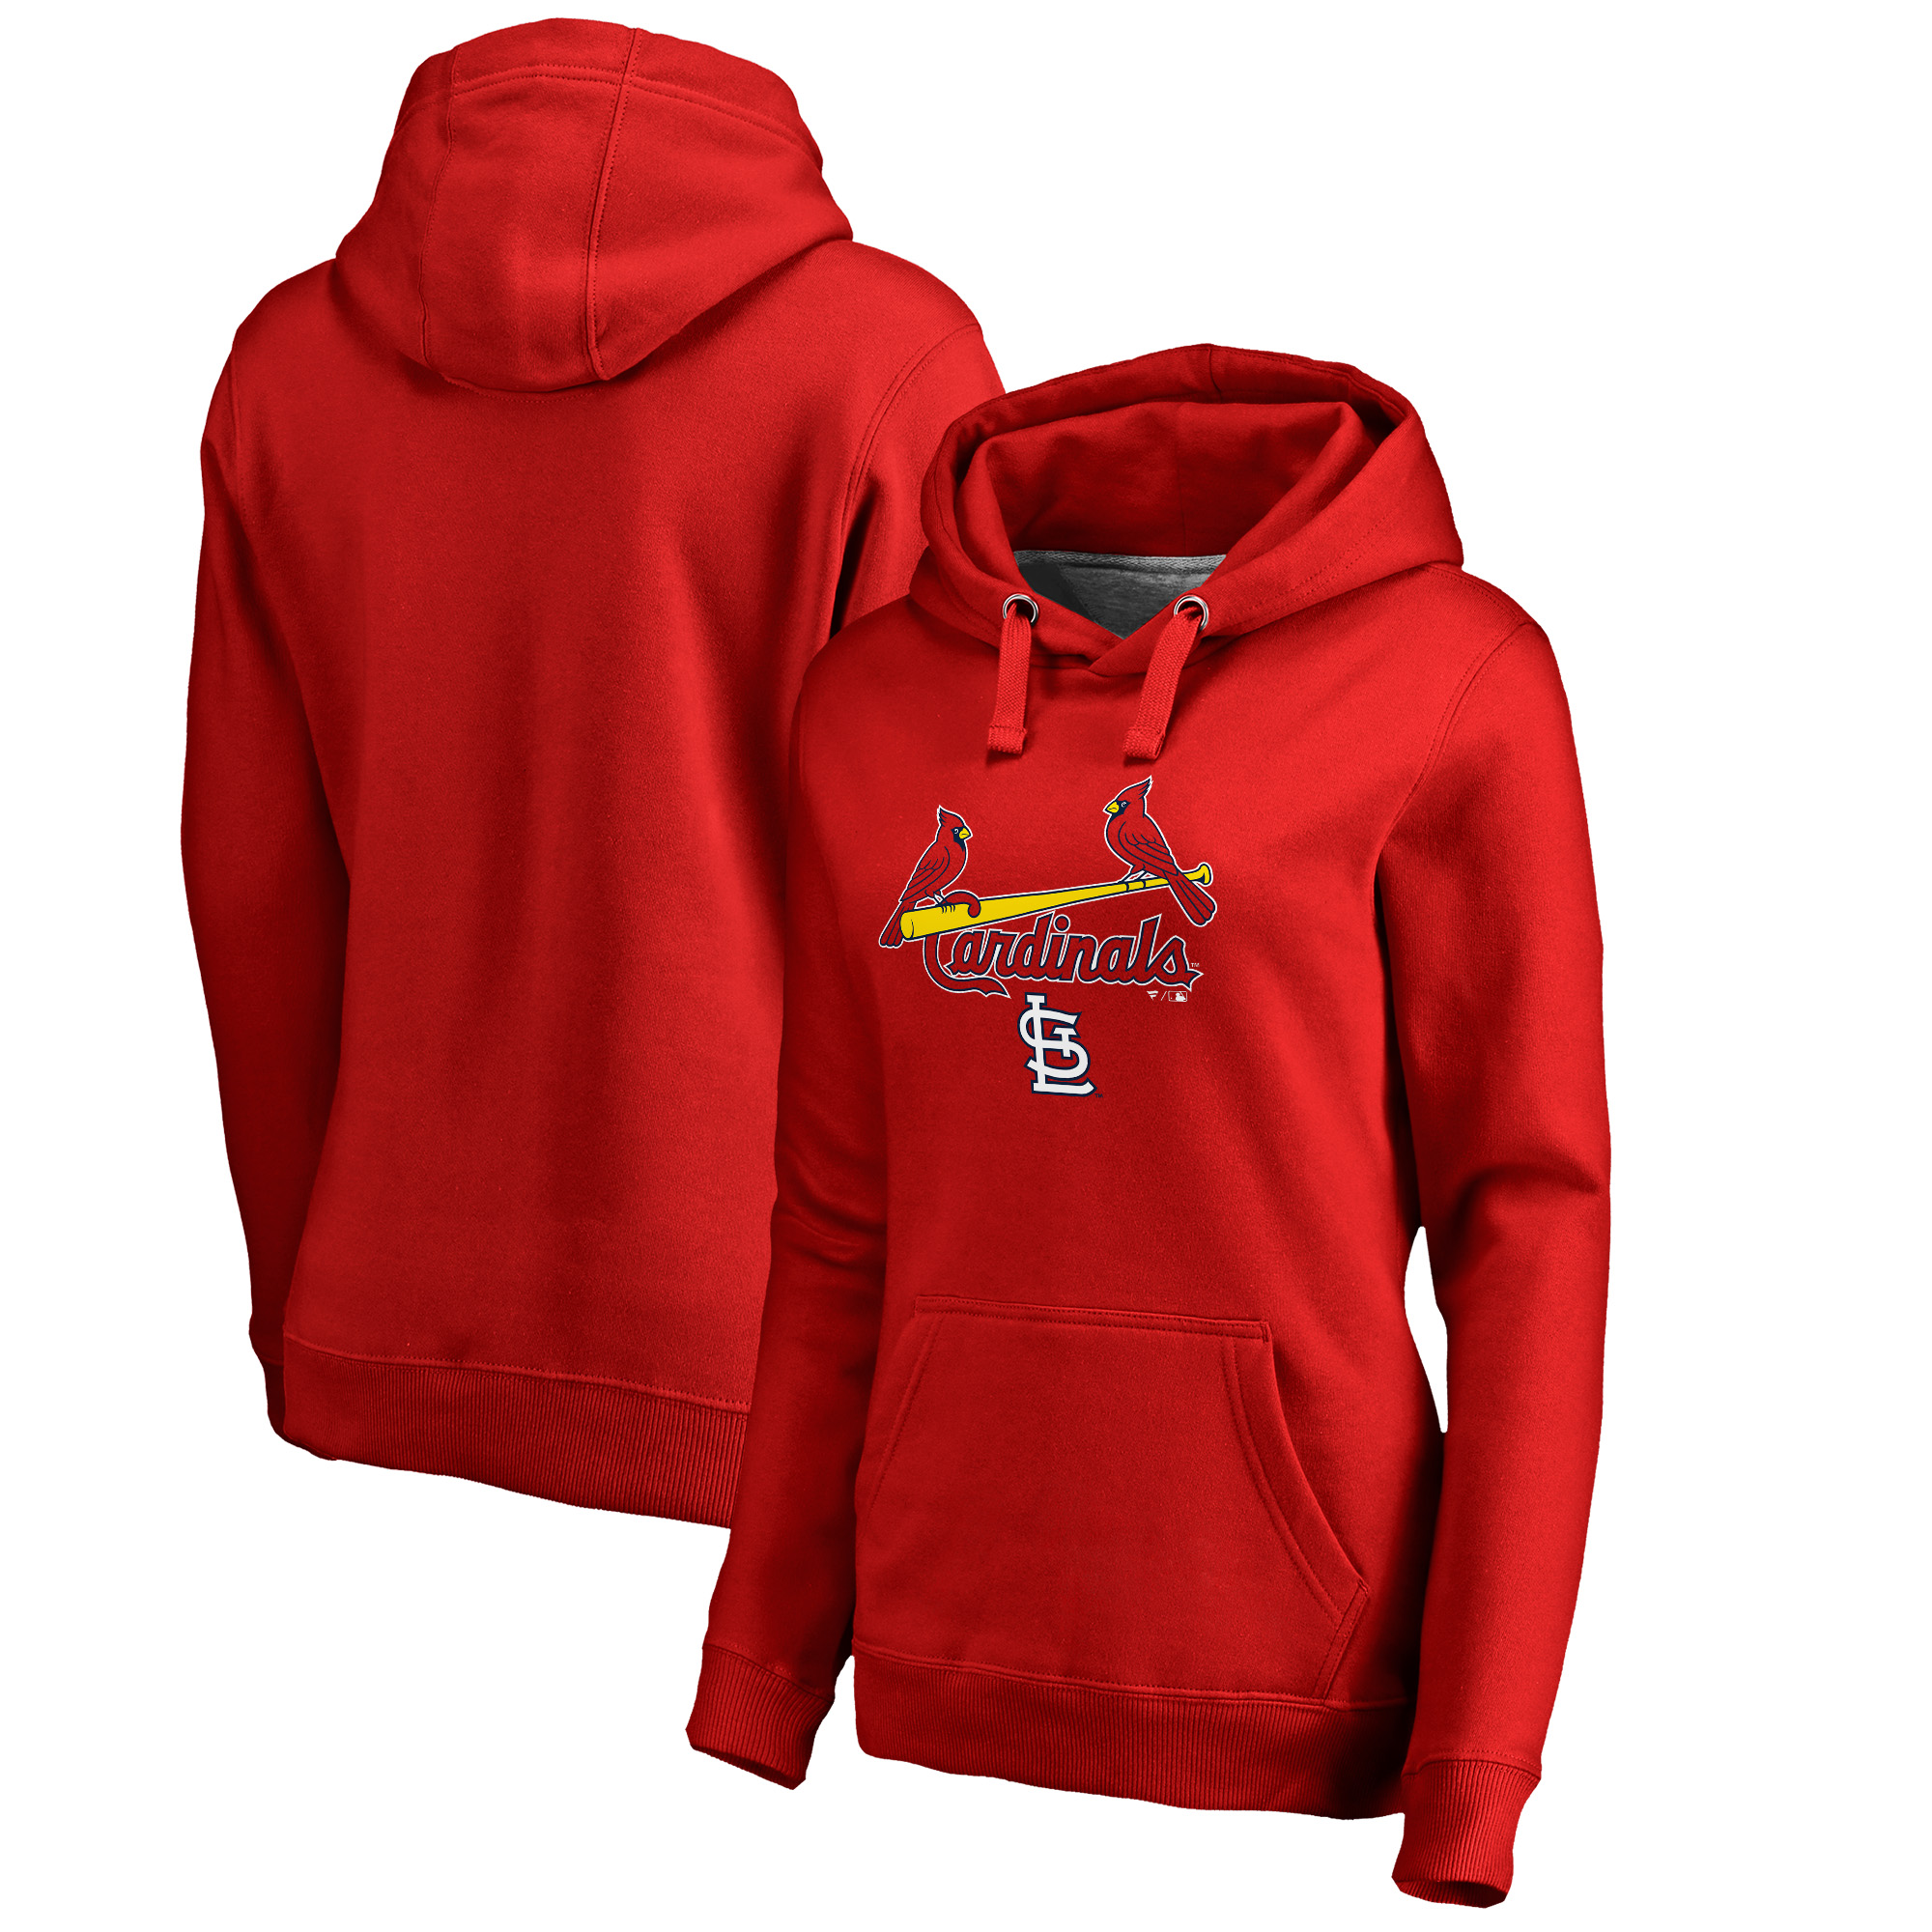 St. Louis Cardinals Fanatics Branded Women's Plus Size Team Lockup Pullover Hoodie - Red